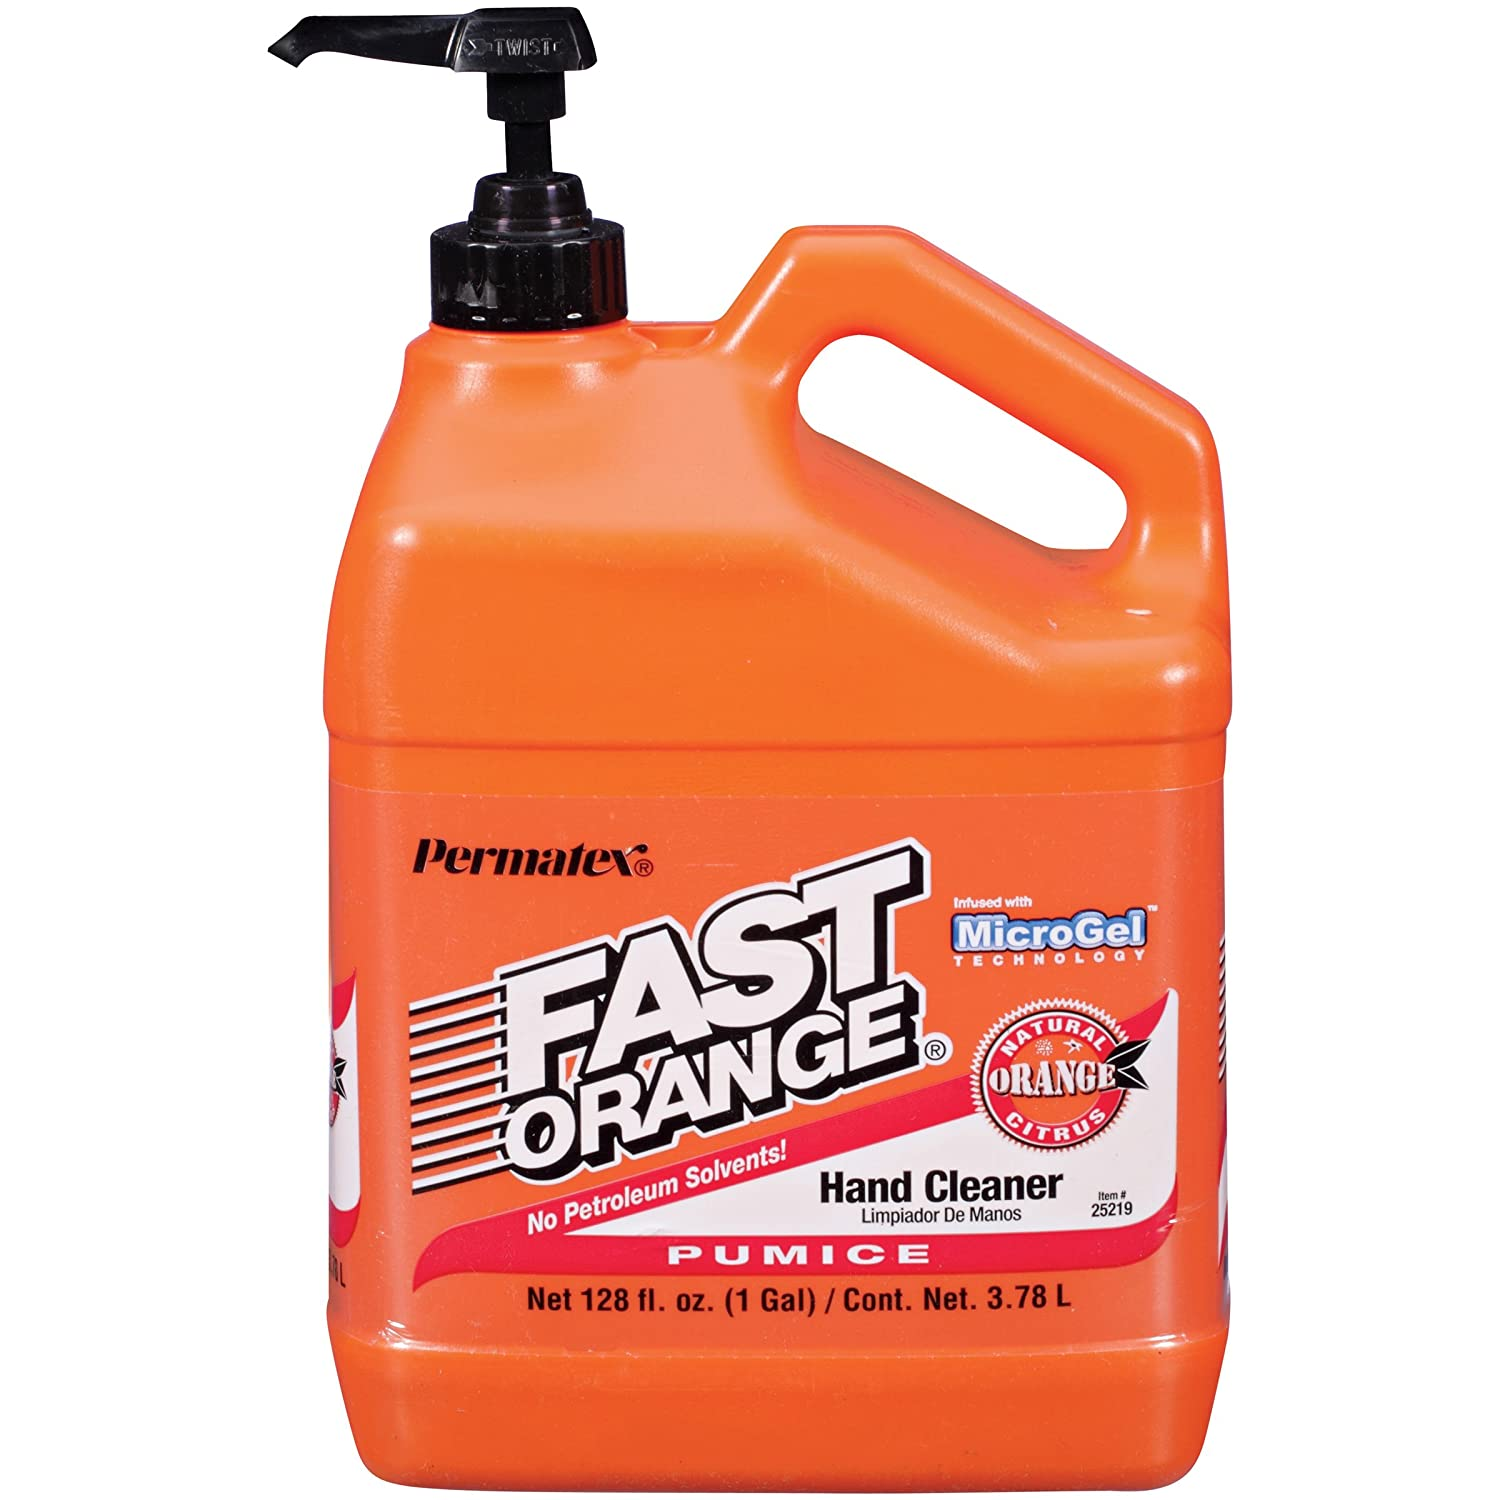 Amazon.com: Permatex 25619 Fast Orange Xtreme Ultra Chery 1-Gal 128. Fluid_Ounces: Automotive